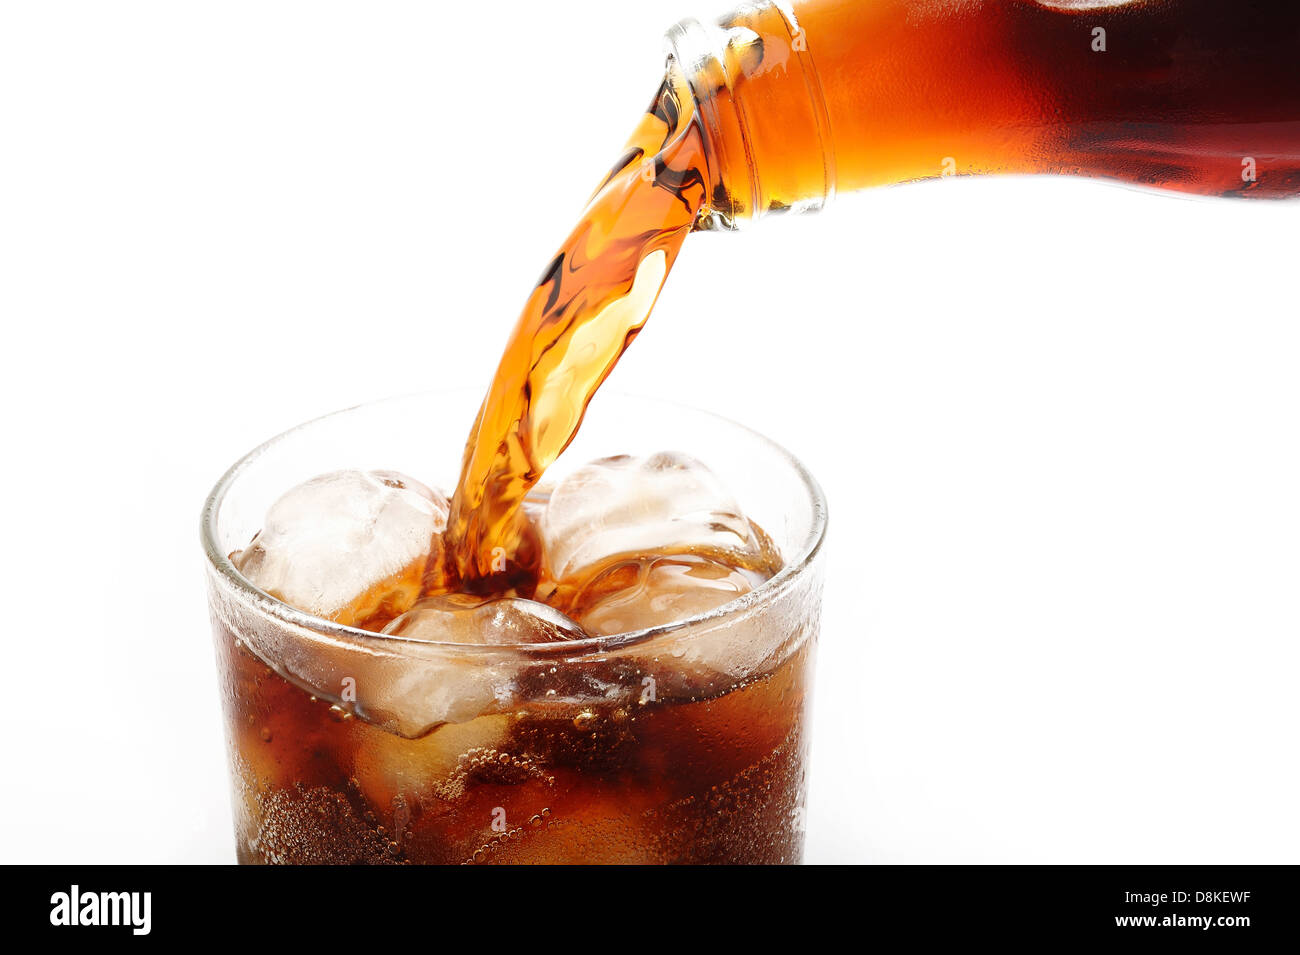 cola pouring into glass on white background - Stock Image